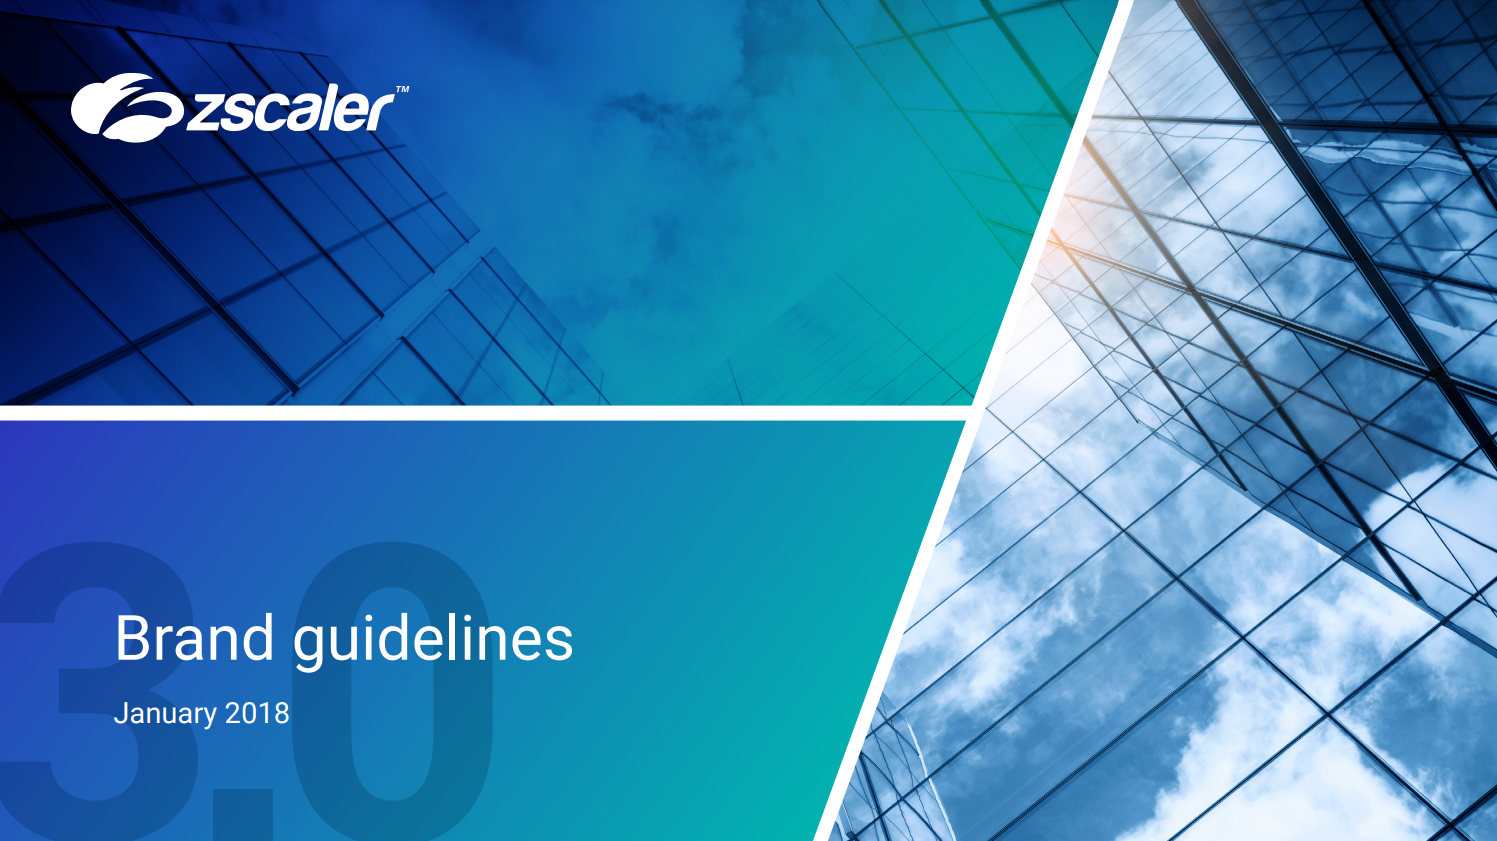 Zscaler's Brand Guide